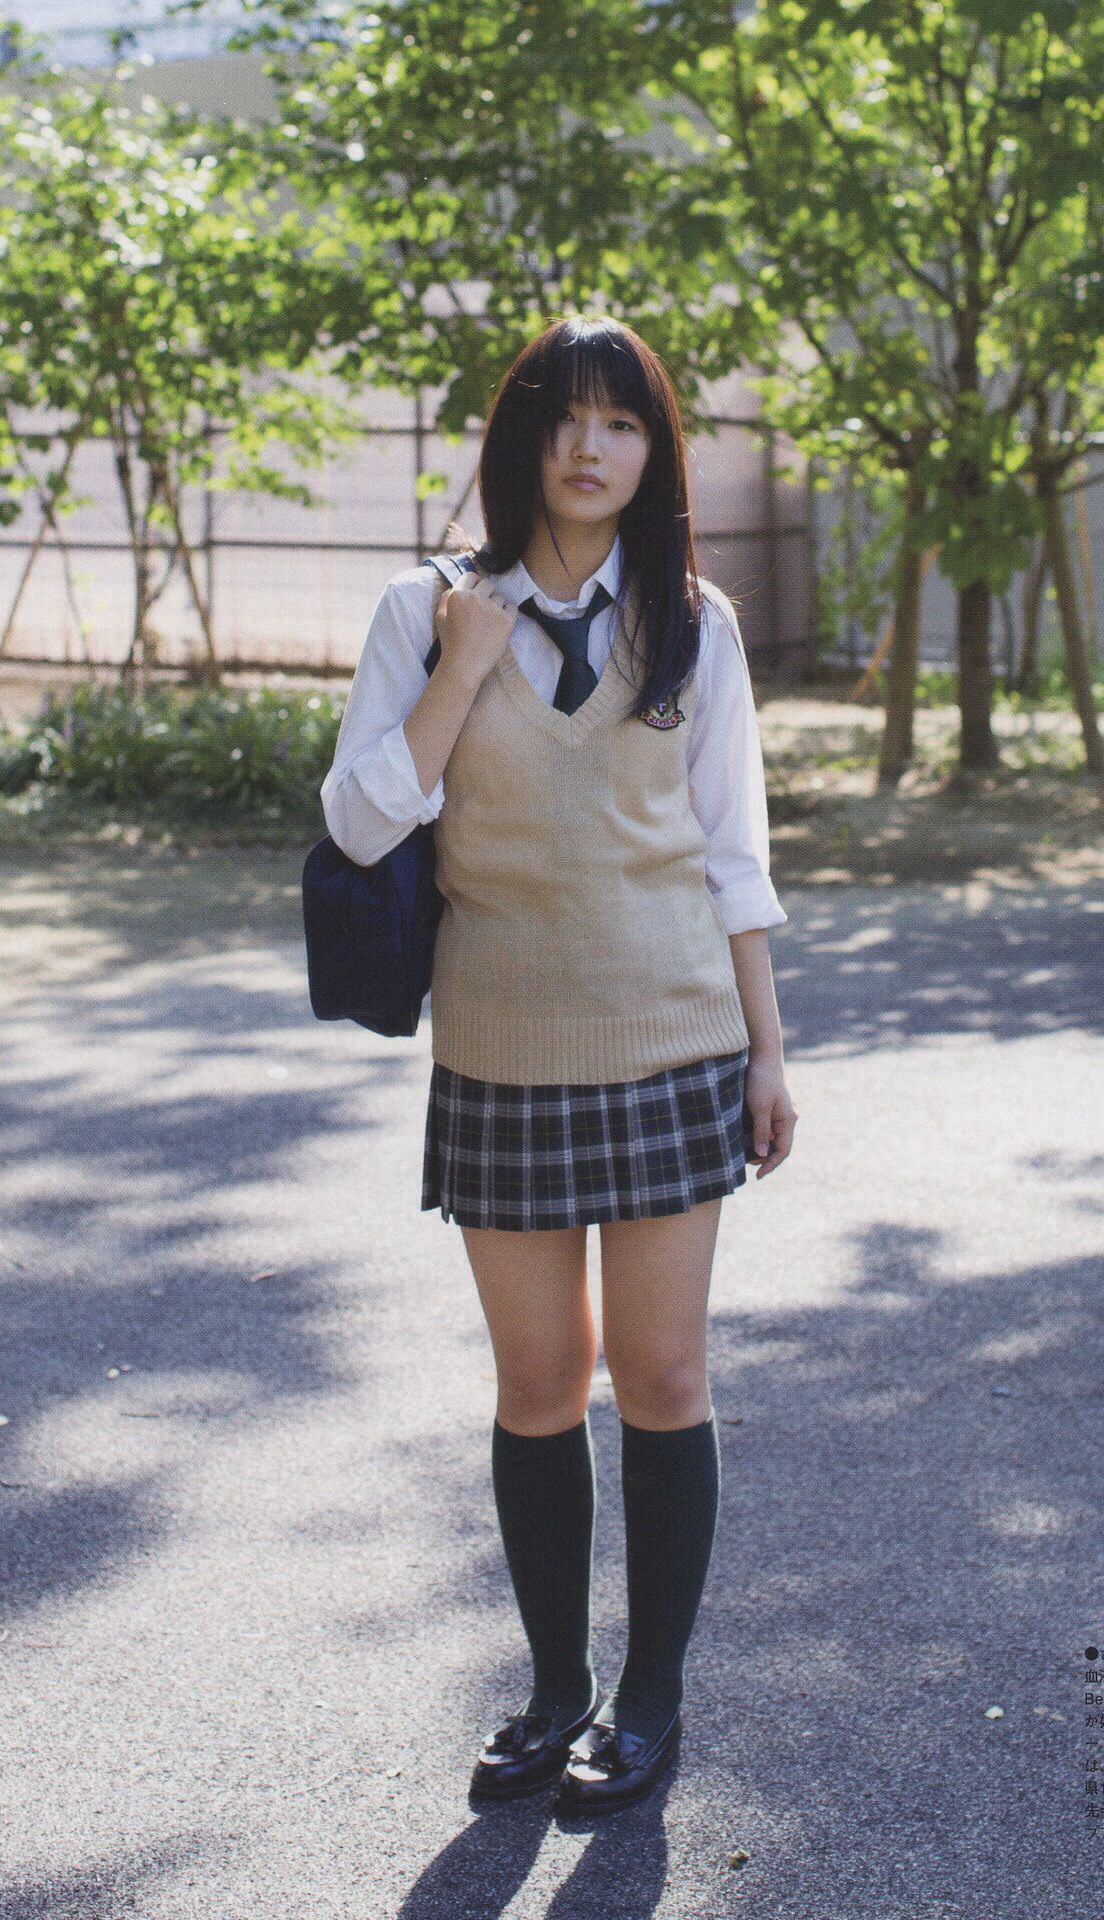 School skirts for teens: models, styles. School fashion for teens 80